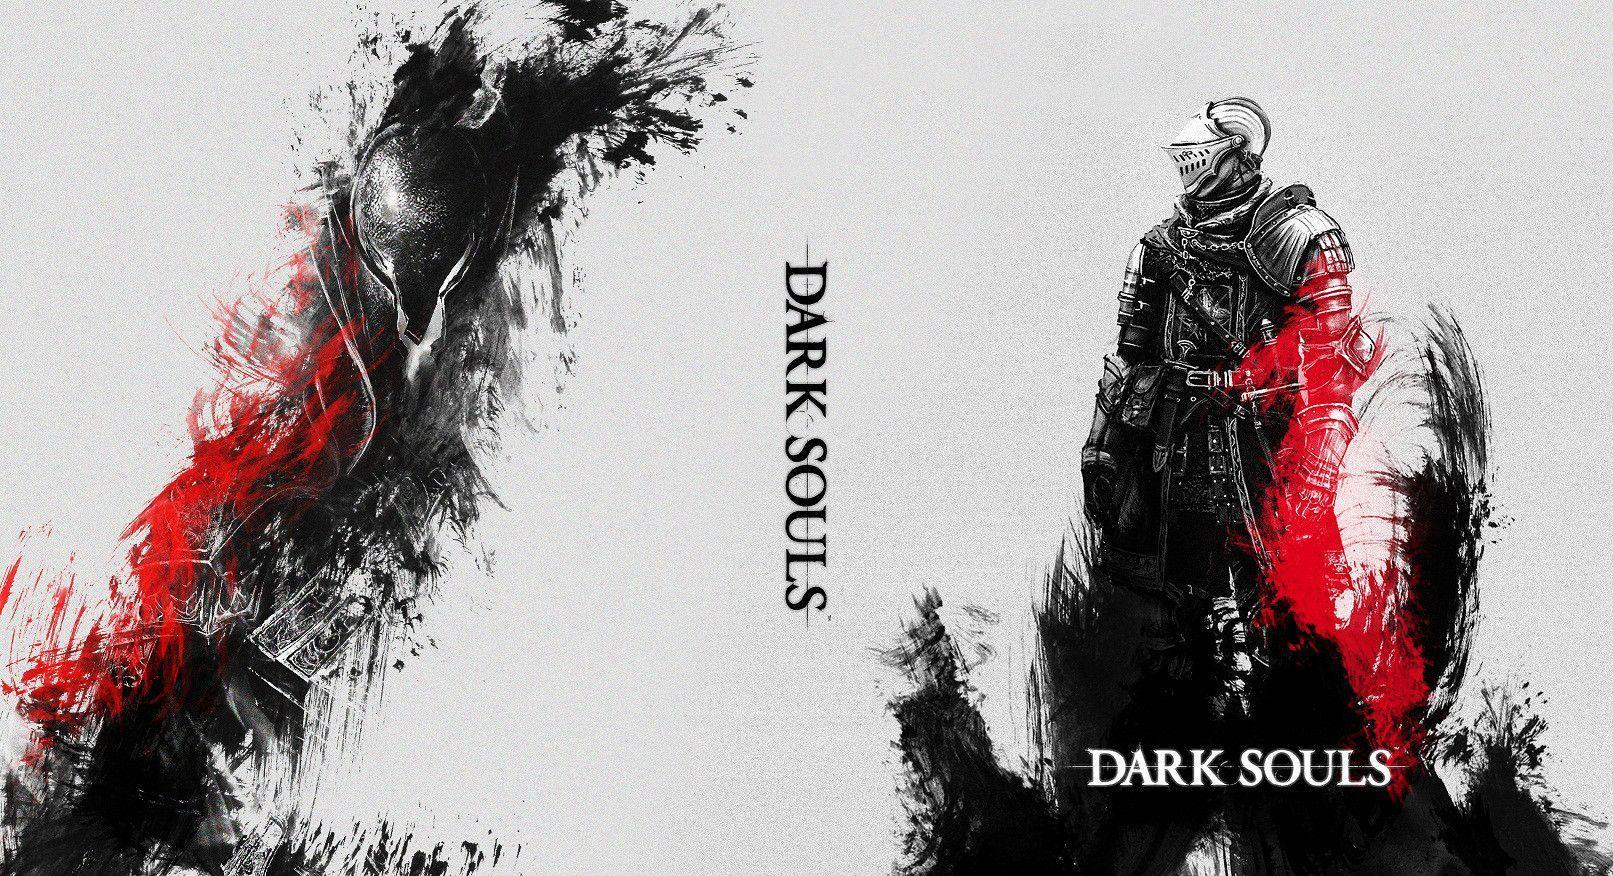 dark souls 4k wallpaper, hd wallpapers dark souls